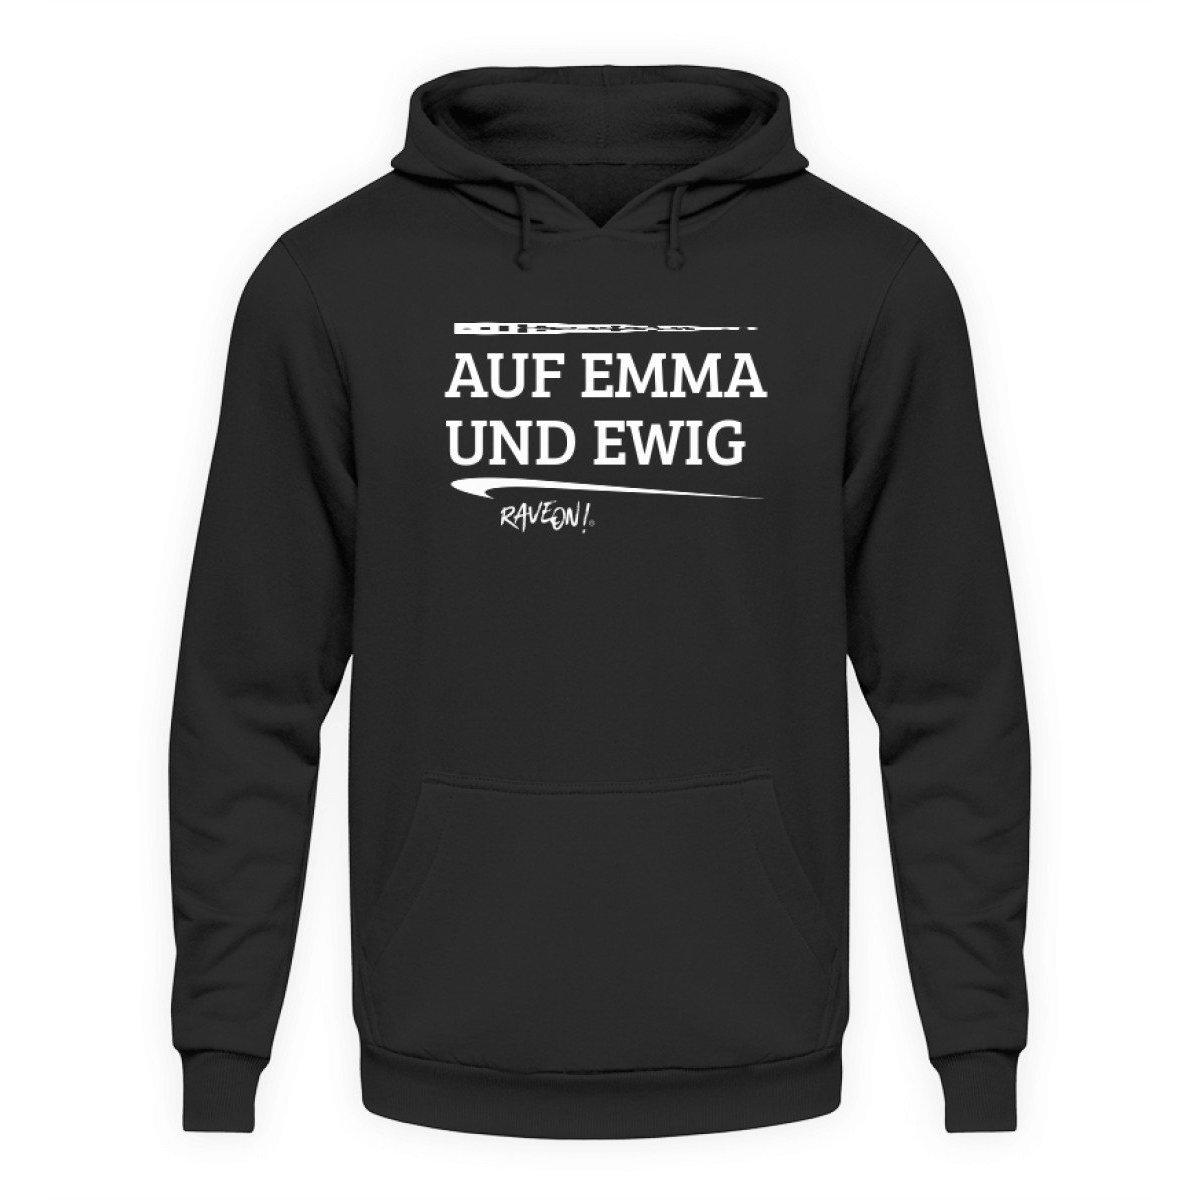 FOR EMMA AND FOREVER - Rave On!® - Unisex Hooded Sweater Hoodie Unisex Hoodie Jet Black / L - Rave On!® the club & techno scene shop for cool young fashion streetwear style & fashion outfits + sexy festival 420 stuff